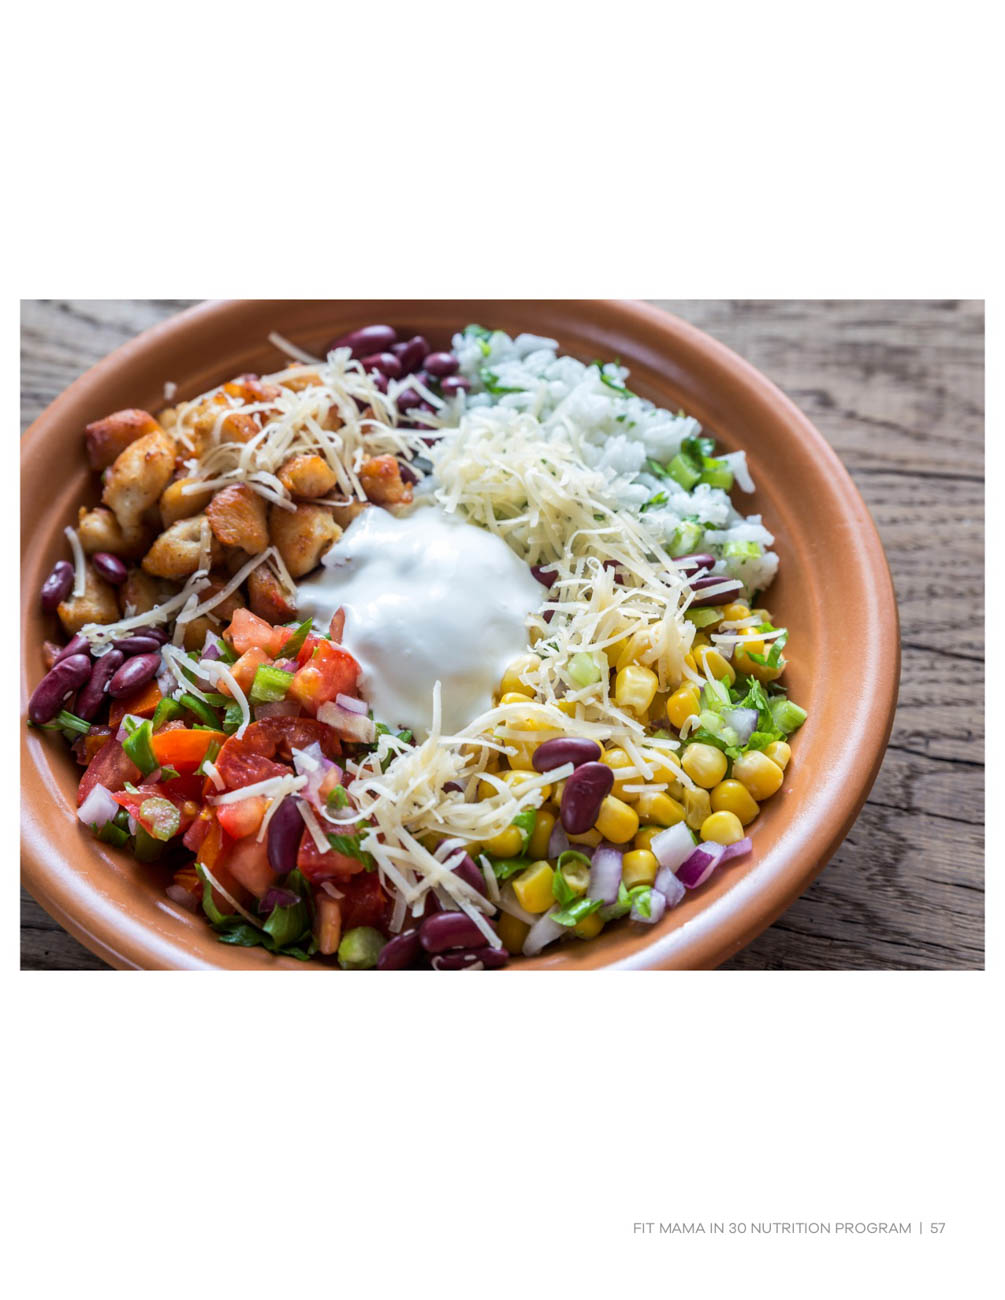 Burrito bowl{ }/ Image courtesy of Fit Mama in 30 // Published: 6.15.19